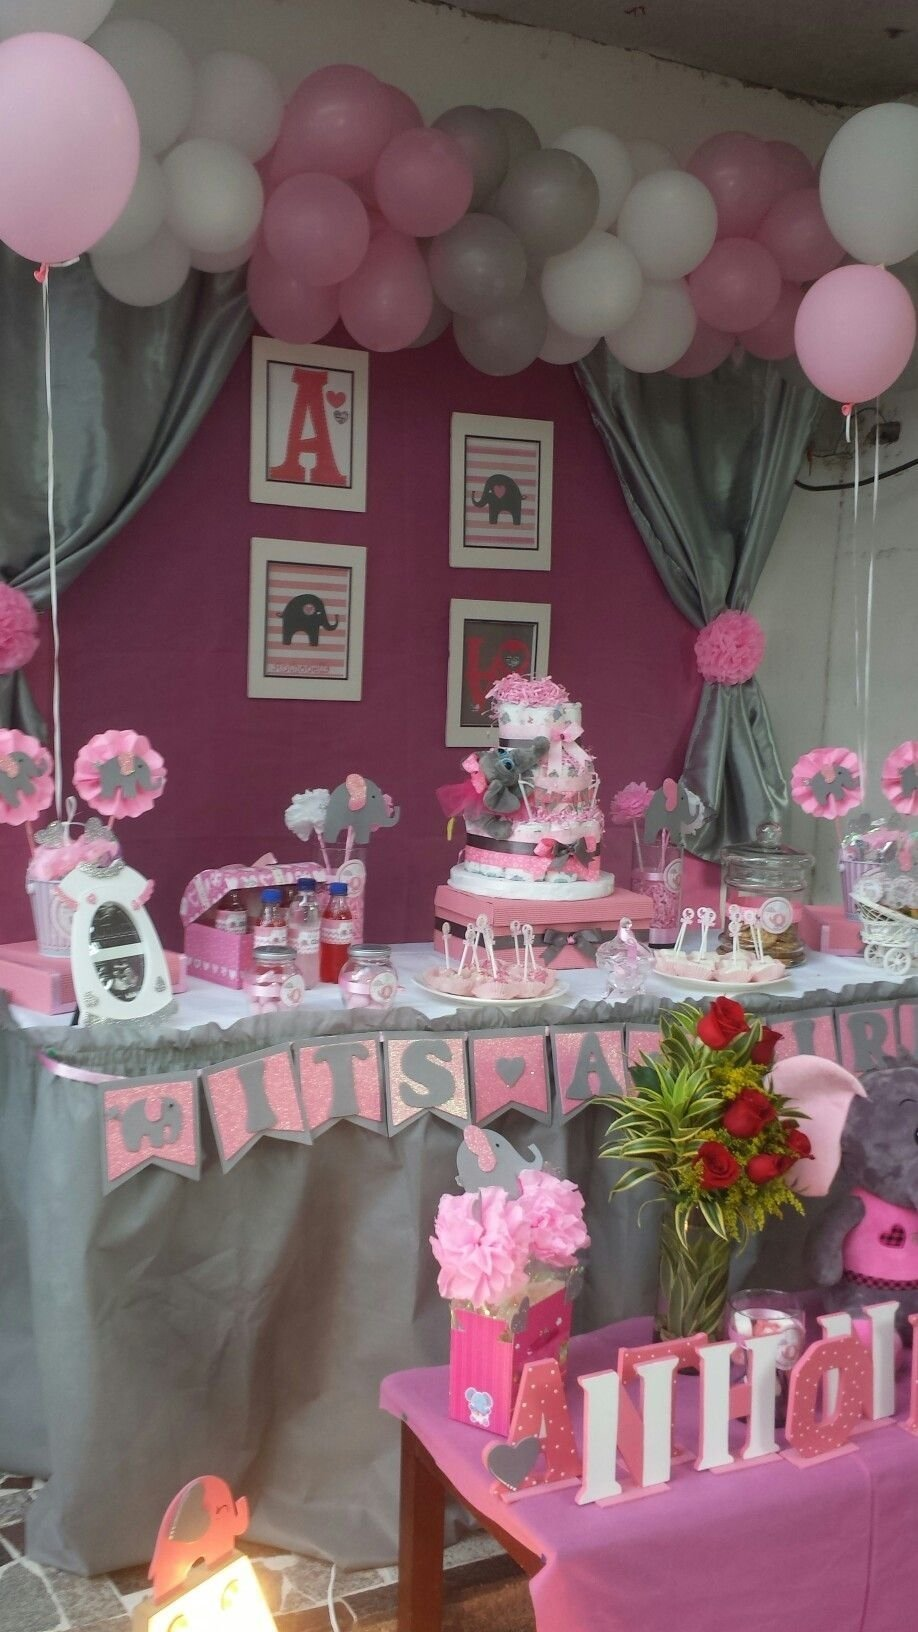 10 Fashionable Baby Girl Baby Shower Ideas these low budget baby shower ideas wont empty your wallet fast 2020